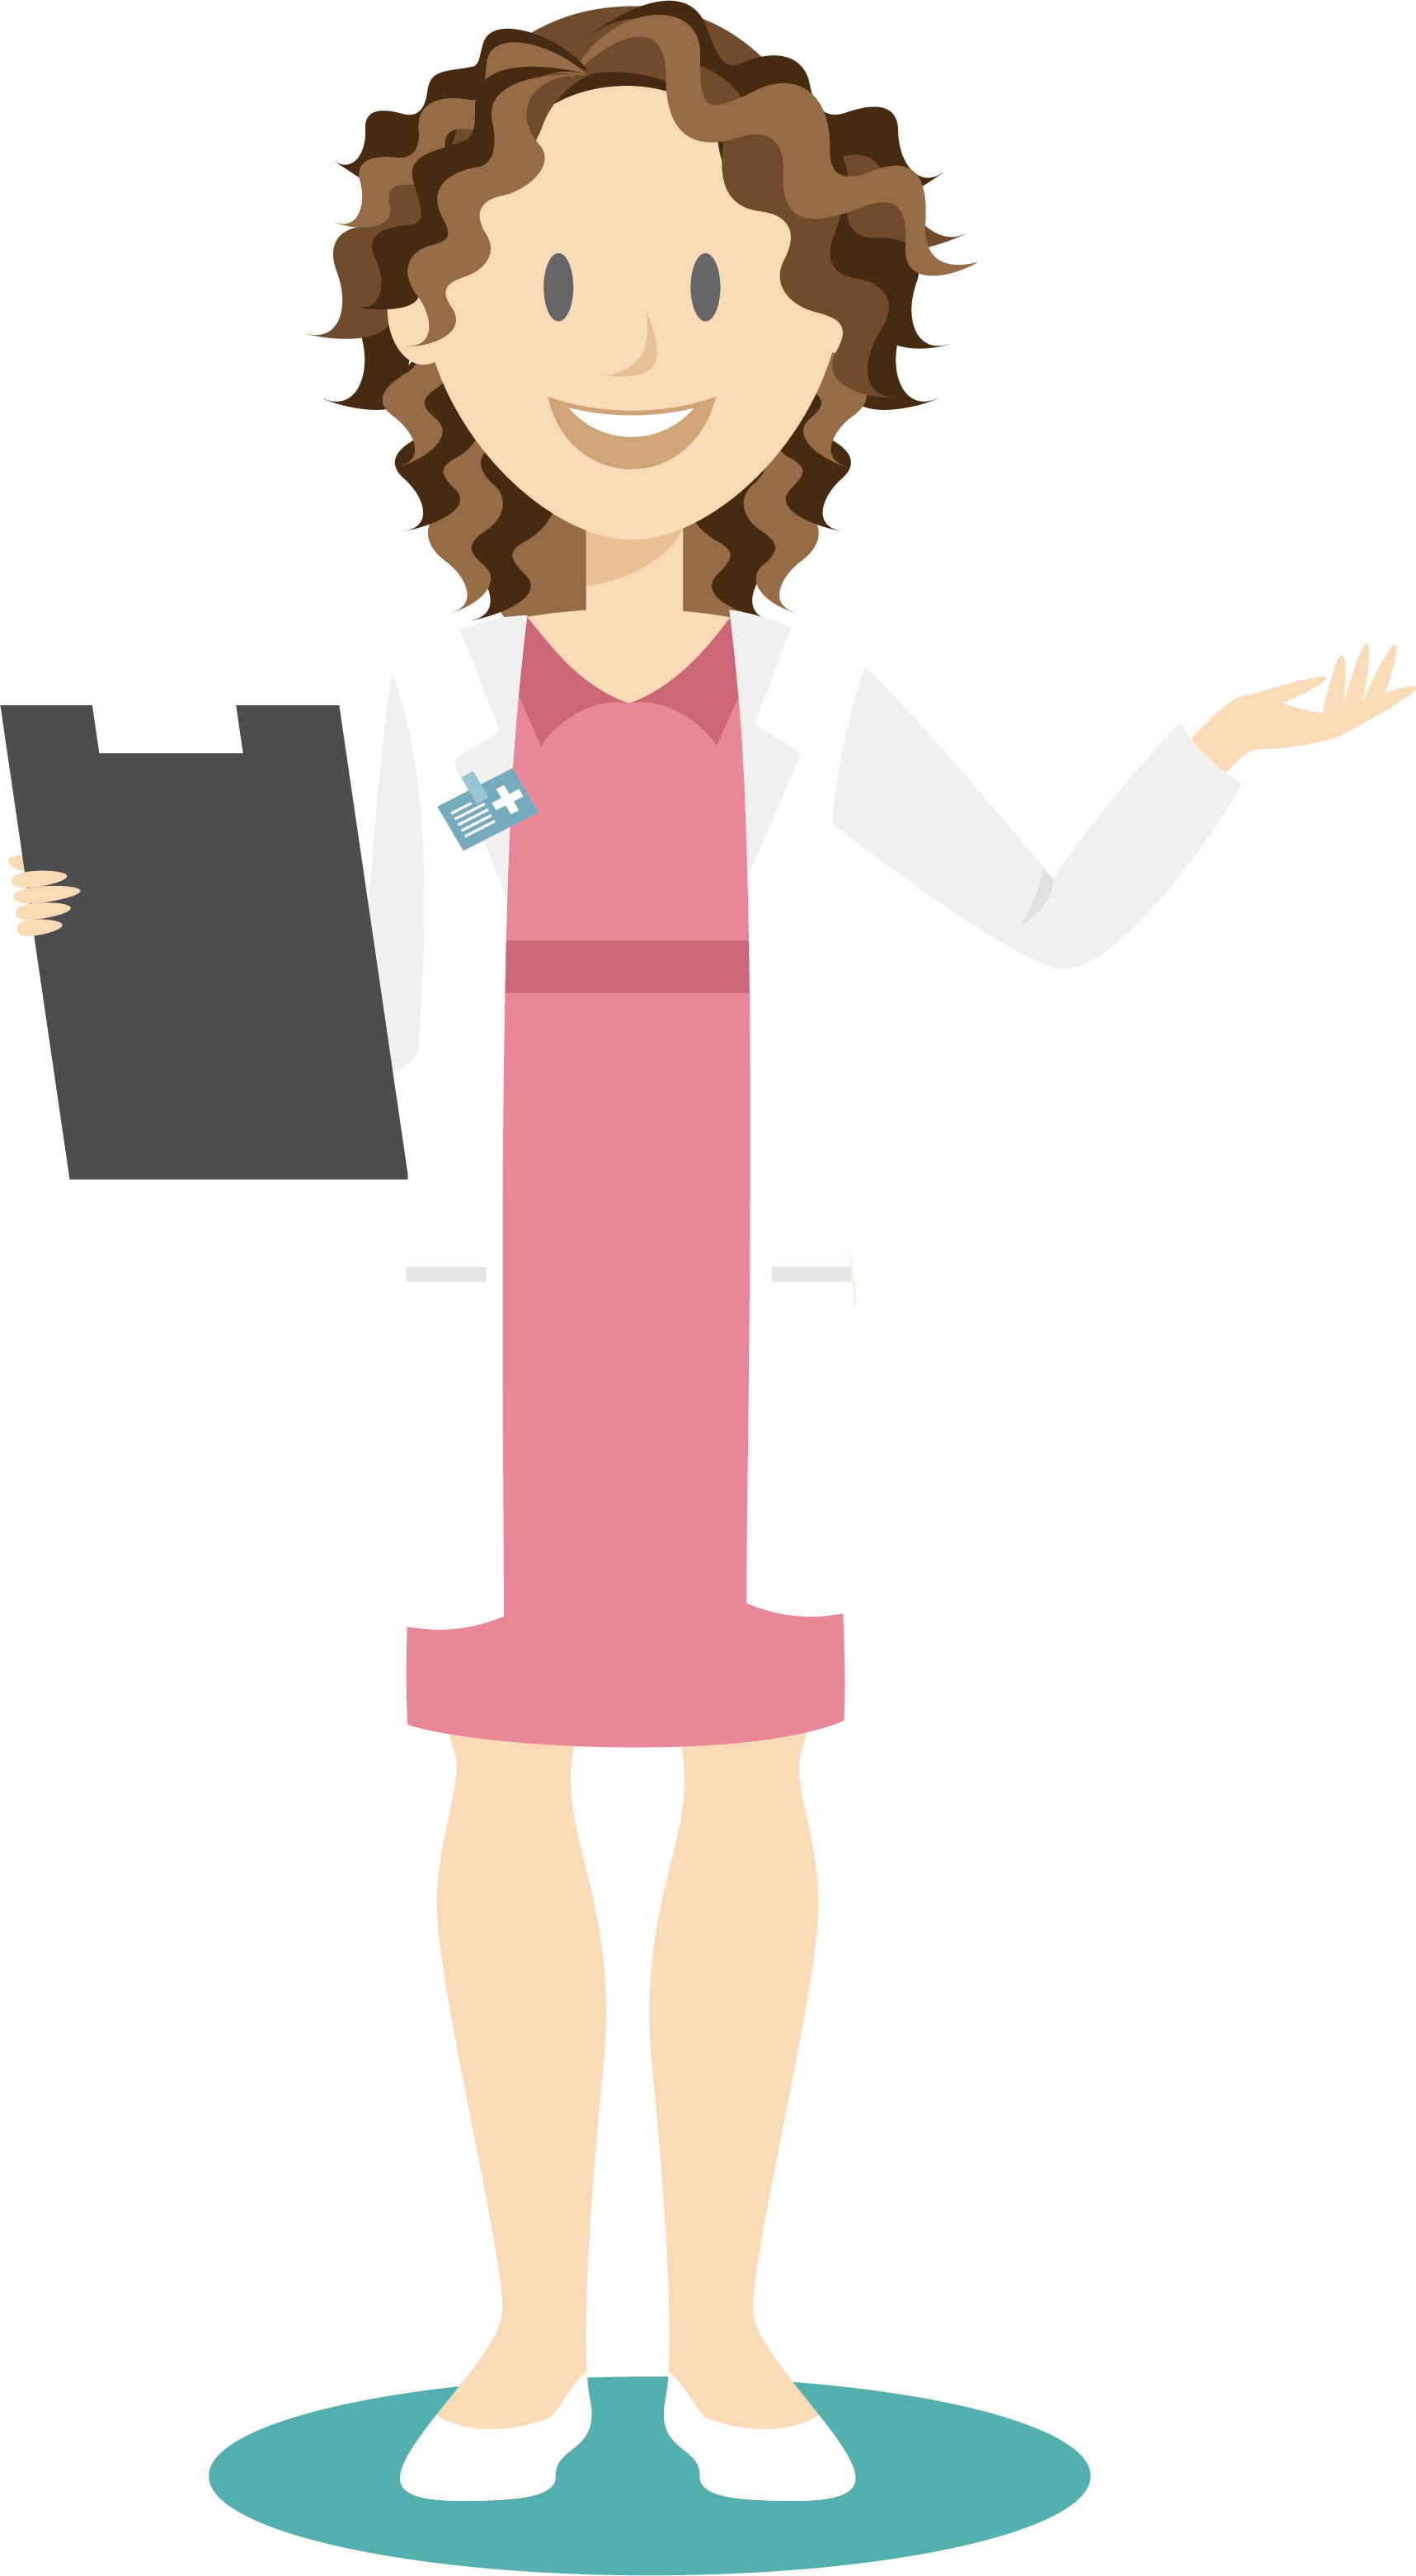 Woman clip art a. Clipart doctor lady doctor